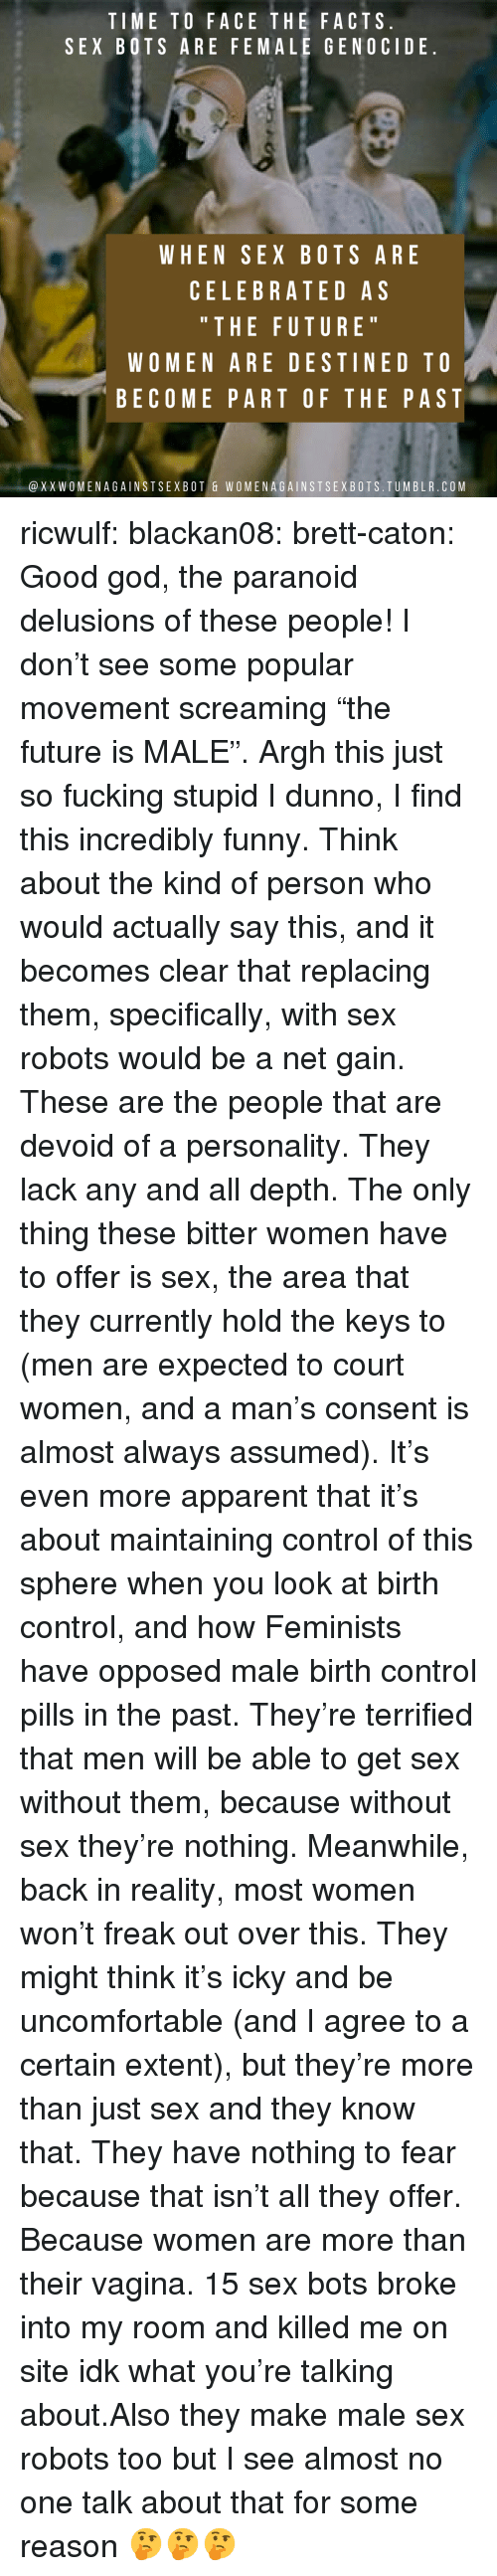 """Facts, Fucking, and Funny: TIME TO FACE THE FACTS  SEX BOTS ARE FEMALE GENOCIDE  WHEN SEX BOTS ARE  CELEBRATED AS  """" THE FUTURE  WOMEN ARE DESTINED TO  BECOME PART OF THE PAST  @XXWOMENAGAINSTSEXBOT & WOMENAGAINSTSEXBOTS.TUMBLR.COM ricwulf:  blackan08:   brett-caton: Good god, the paranoid delusions of these people! I don't see some popular movement screaming """"the future is MALE"""". Argh this just so fucking stupid   I dunno, I find this incredibly funny. Think about the kind of person who would actually say this, and it becomes clear that replacing them, specifically, with sex robots would be a net gain. These are the people that are devoid of a personality. They lack any and all depth. The only thing these bitter women have to offer is sex, the area that they currently hold the keys to (men are expected to court women, and a man's consent is almost always assumed). It's even more apparent that it's about maintaining control of this sphere when you look at birth control, and how Feminists have opposed male birth control pills in the past.  They're terrified that men will be able to get sex without them, because without sex they're nothing. Meanwhile, back in reality, most women won't freak out over this. They might think it's icky and be uncomfortable (and I agree to a certain extent), but they're more than just sex and they know that. They have nothing to fear because that isn't all they offer. Because women are more than their vagina.   15 sex bots broke into my room and killed me on site idk what you're talking about.Also they make male sex robots too but I see almost no one talk about that for some reason 🤔🤔🤔"""